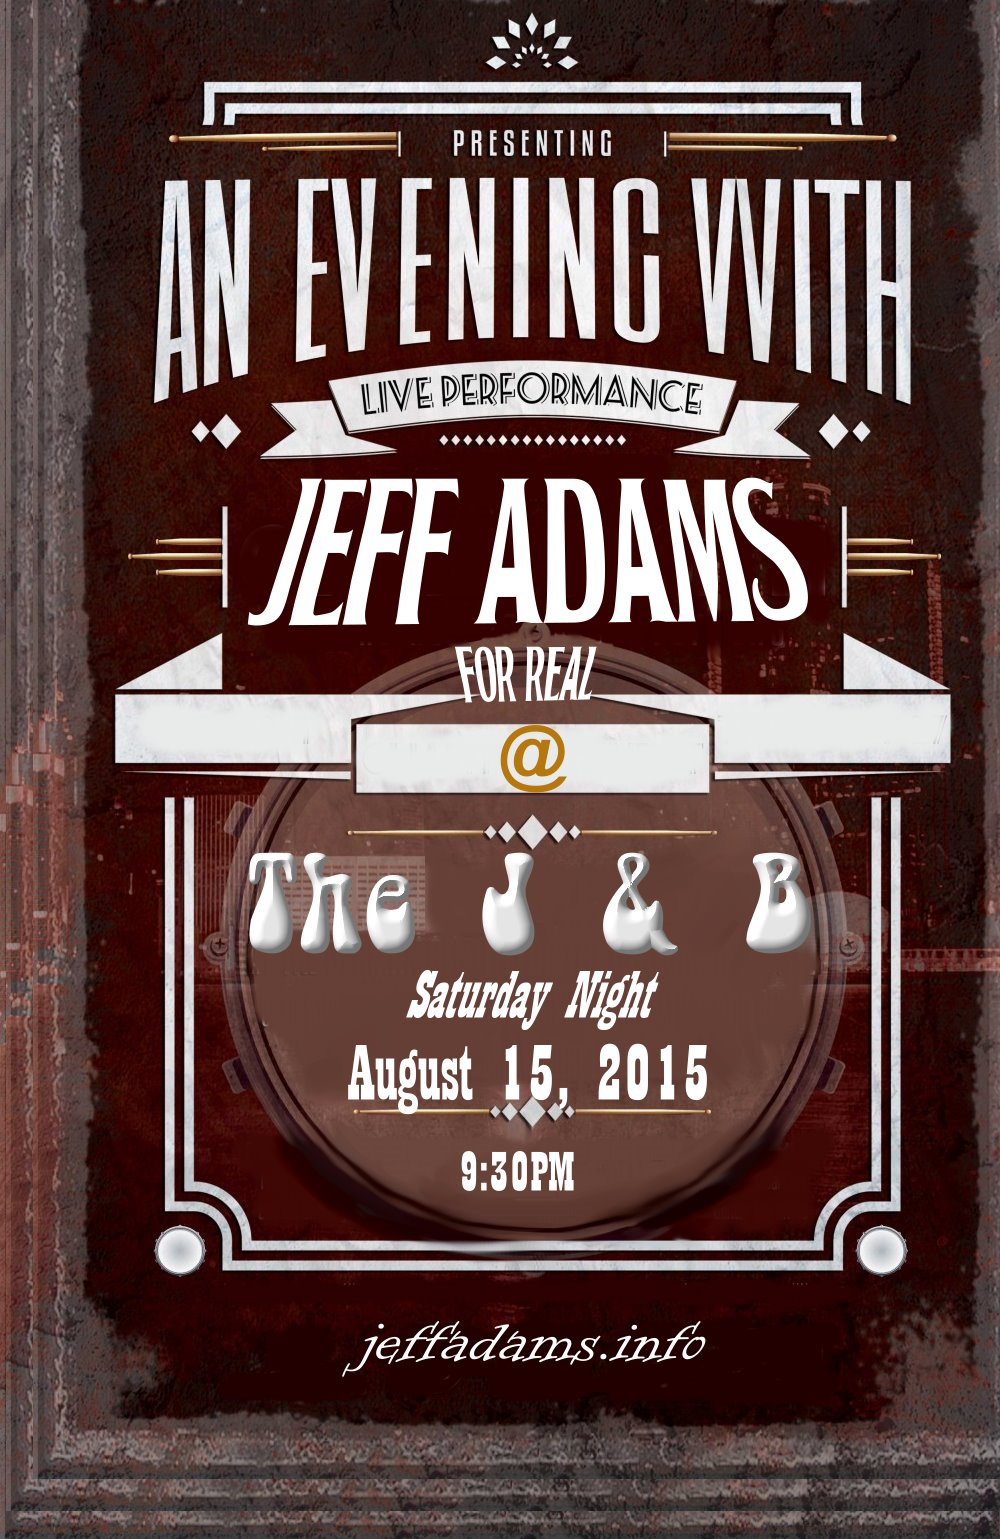 Jeff Adams @ The J & B on Aug 15th